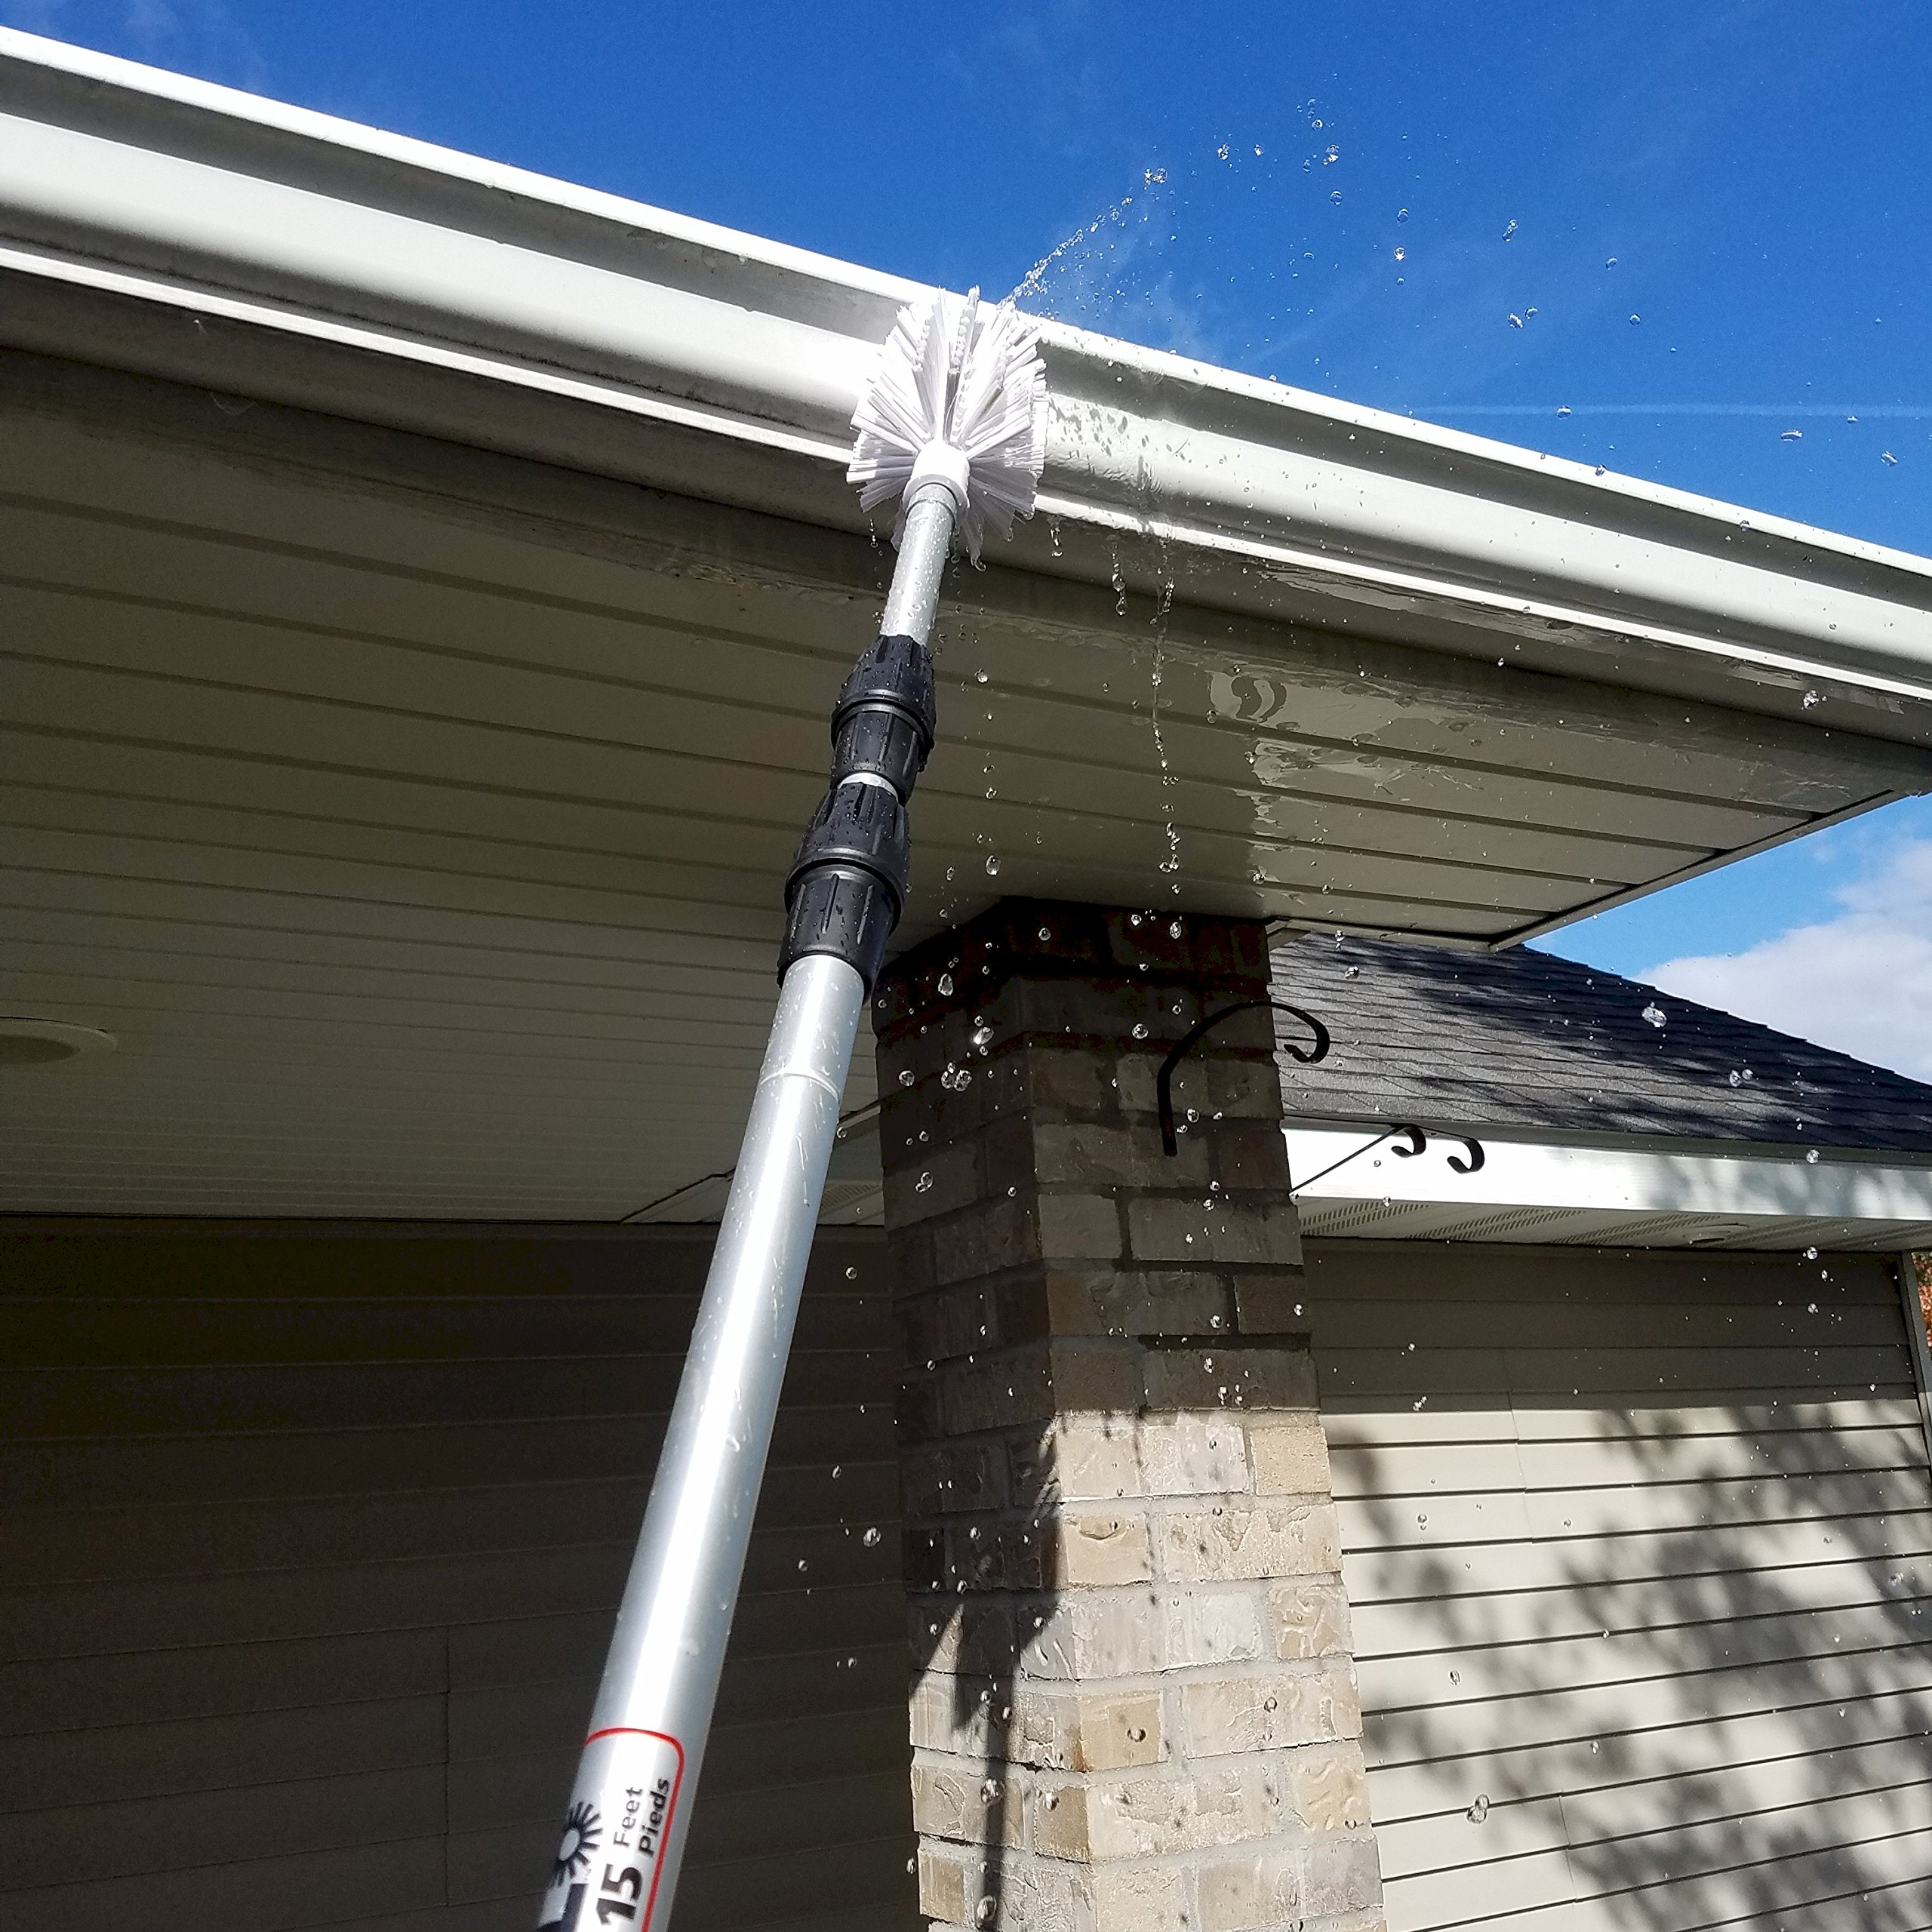 Ezy Flo Deluxe High Reach Gutter/Window/Patio Cleaning Kit by Ezy Flo (Image #6)